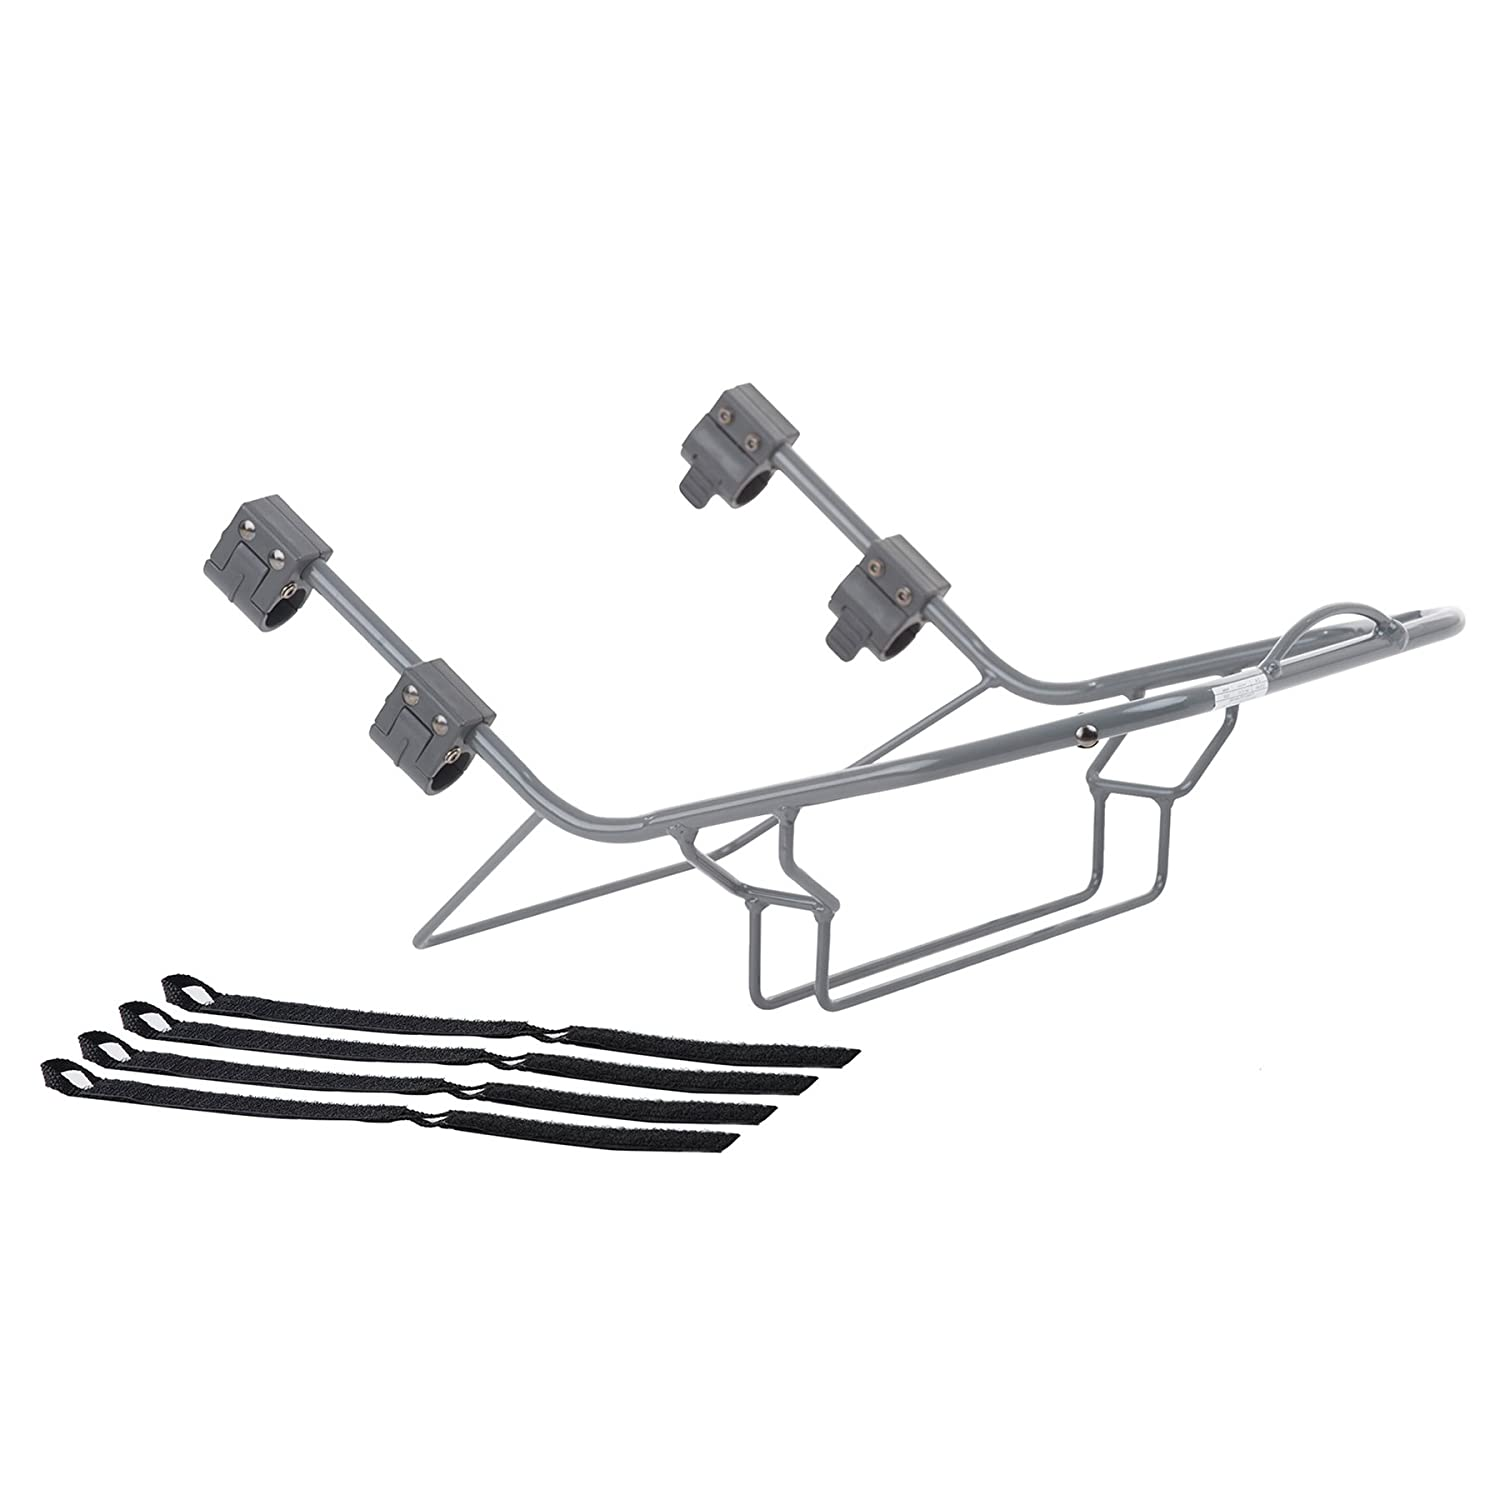 Joovy Zoom Car Seat Adapter for Graco Snugride Click Connect